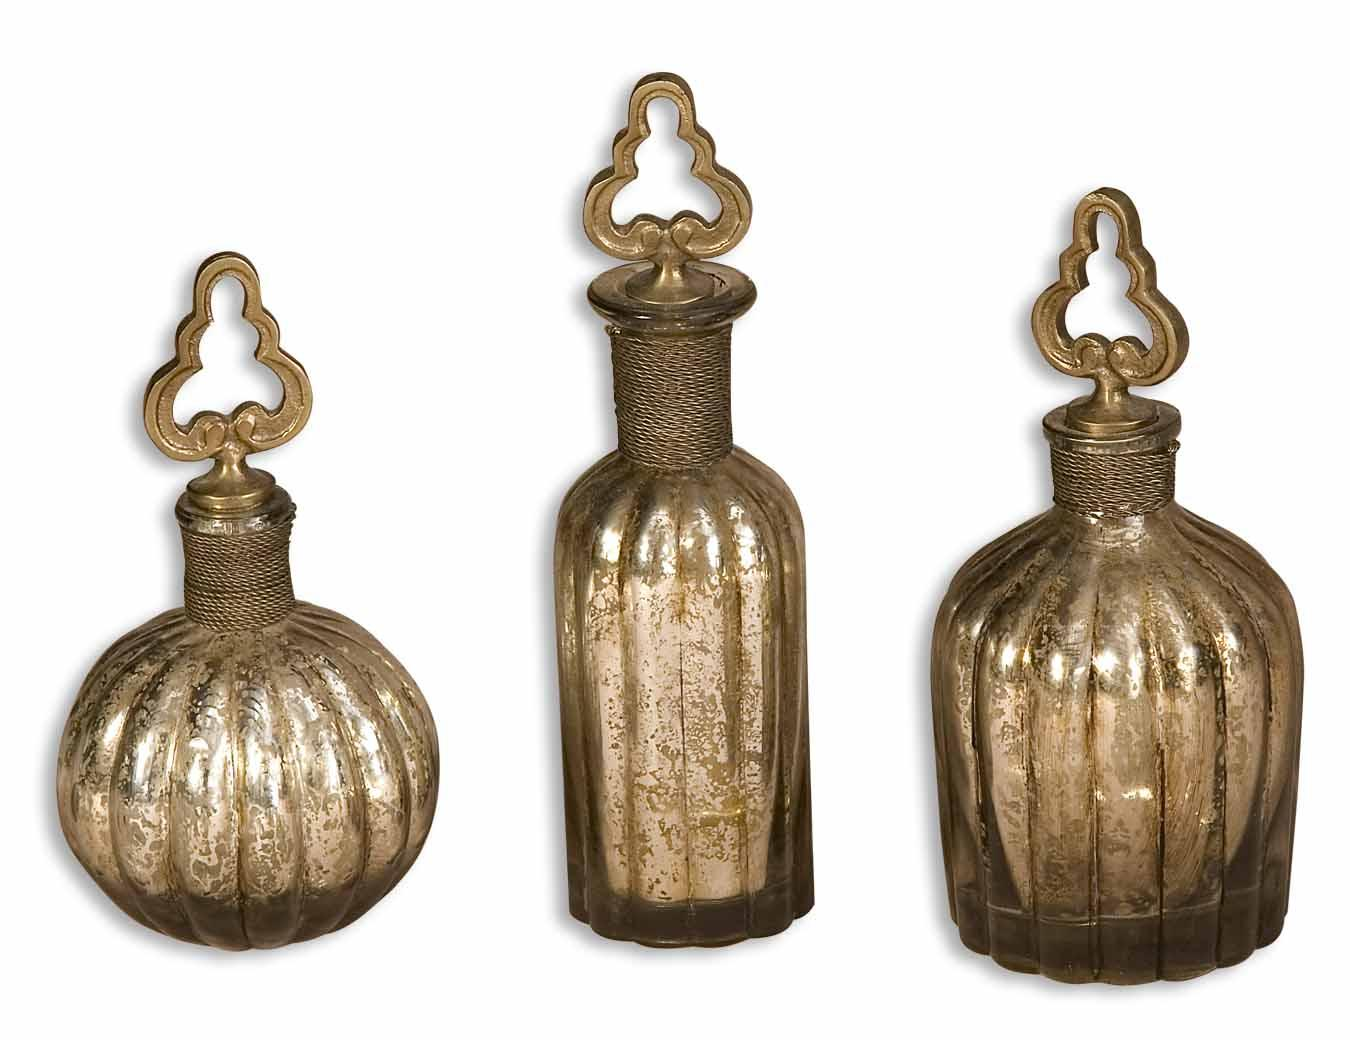 Uttermost Accessories Kaho Perfume Bottles Set of 3 - Item Number: 19141